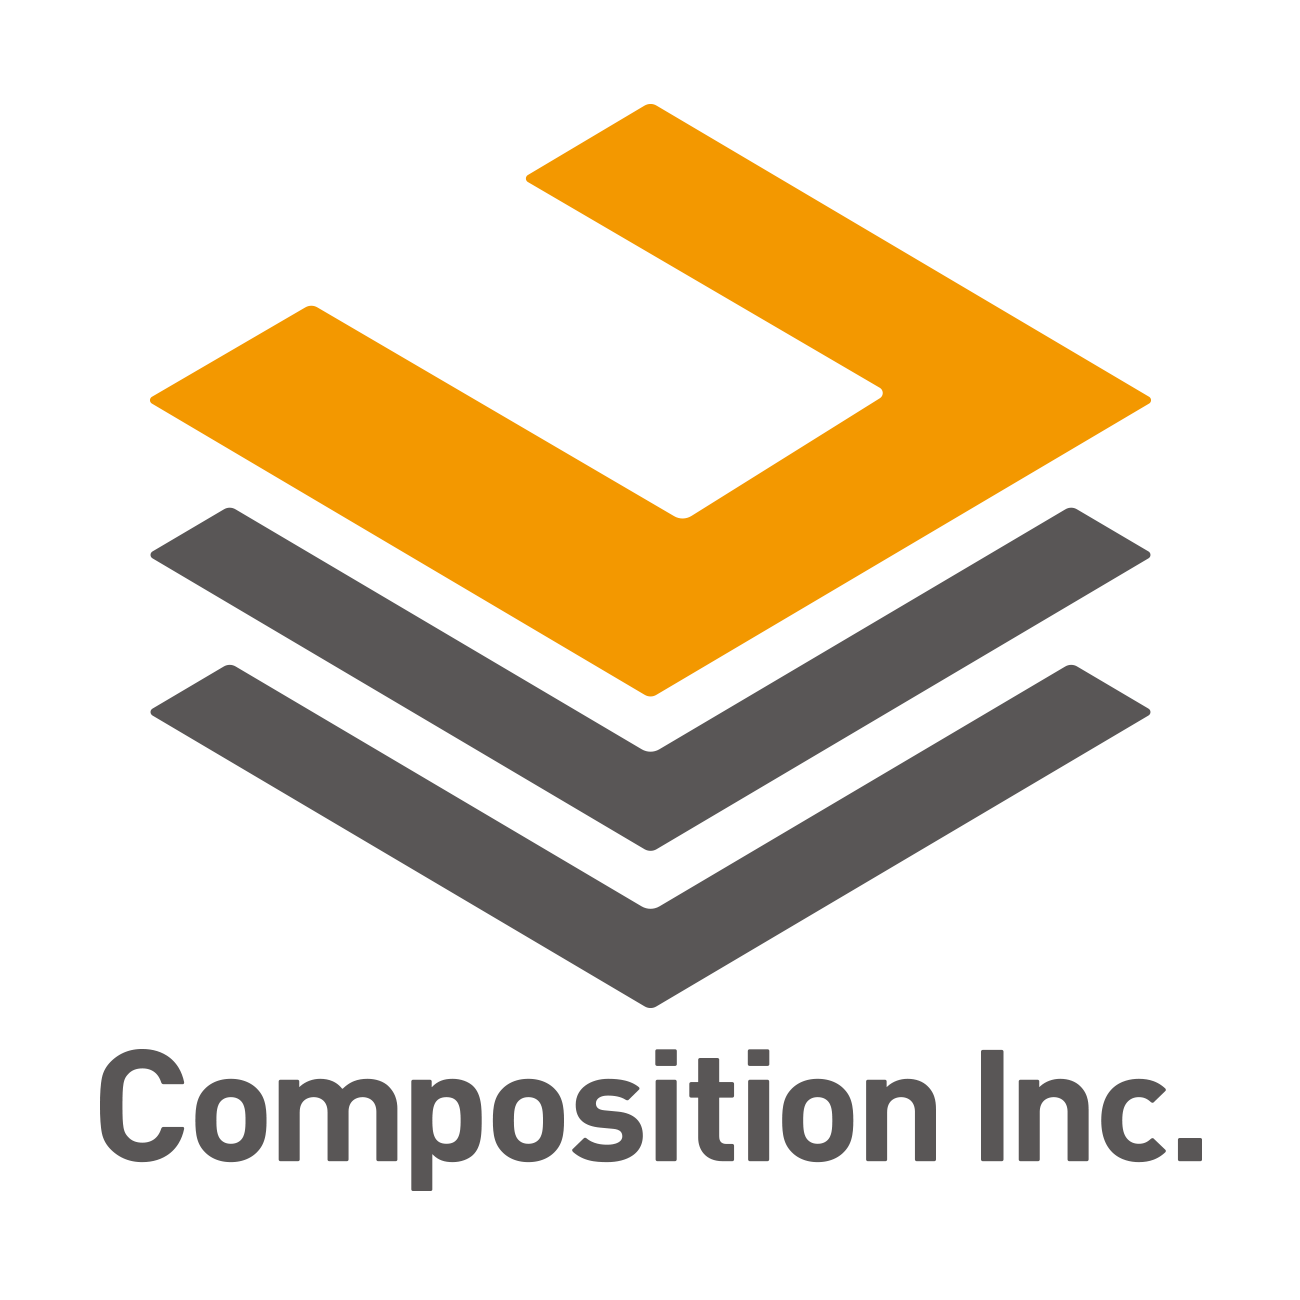 Composition Inc.